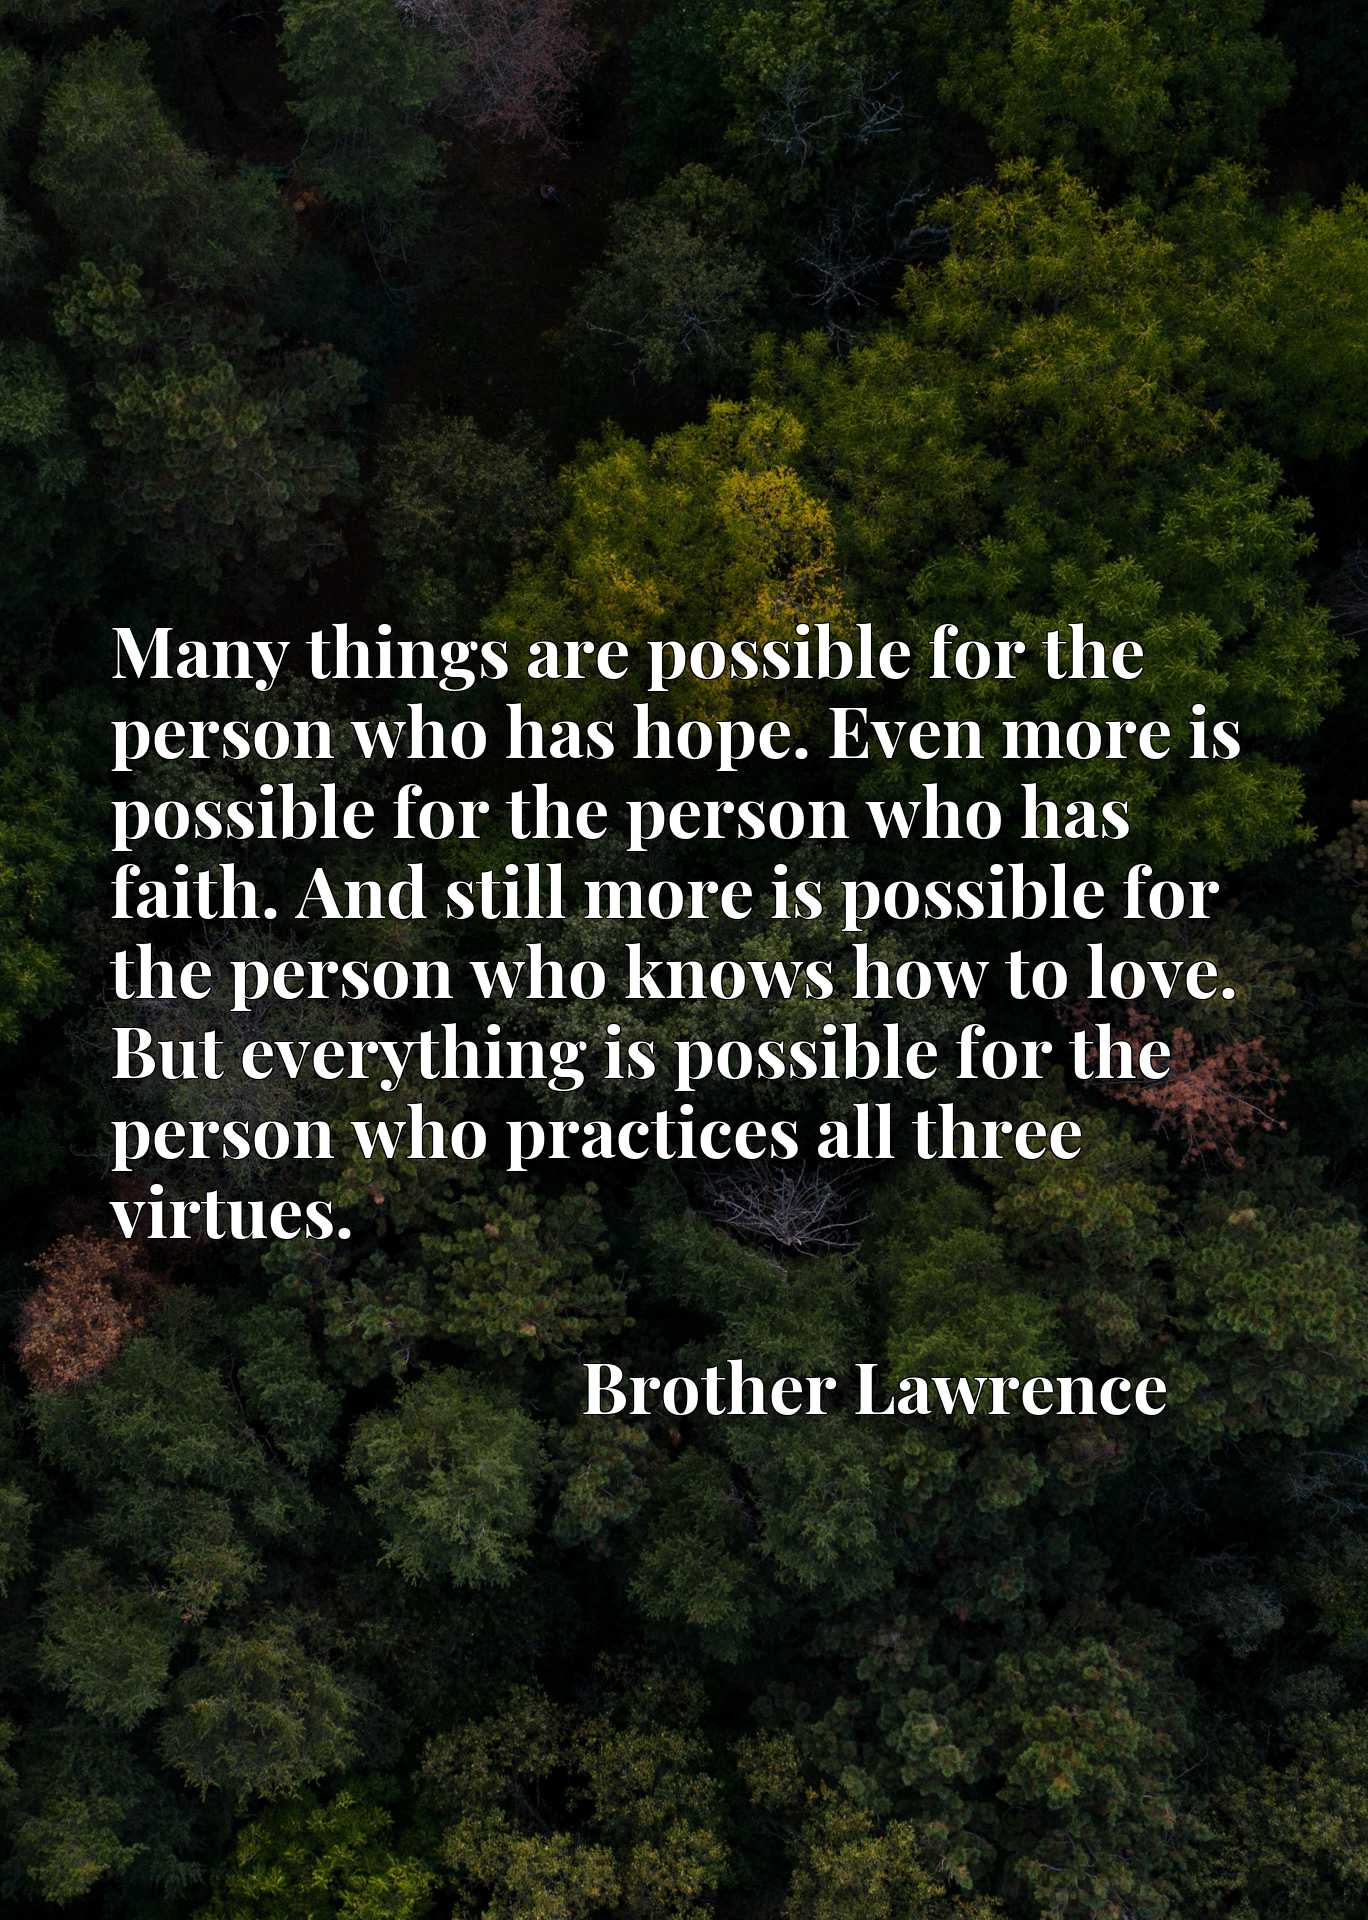 Many things are possible for the person who has hope. Even more is possible for the person who has faith. And still more is possible for the person who knows how to love. But everything is possible for the person who practices all three virtues.